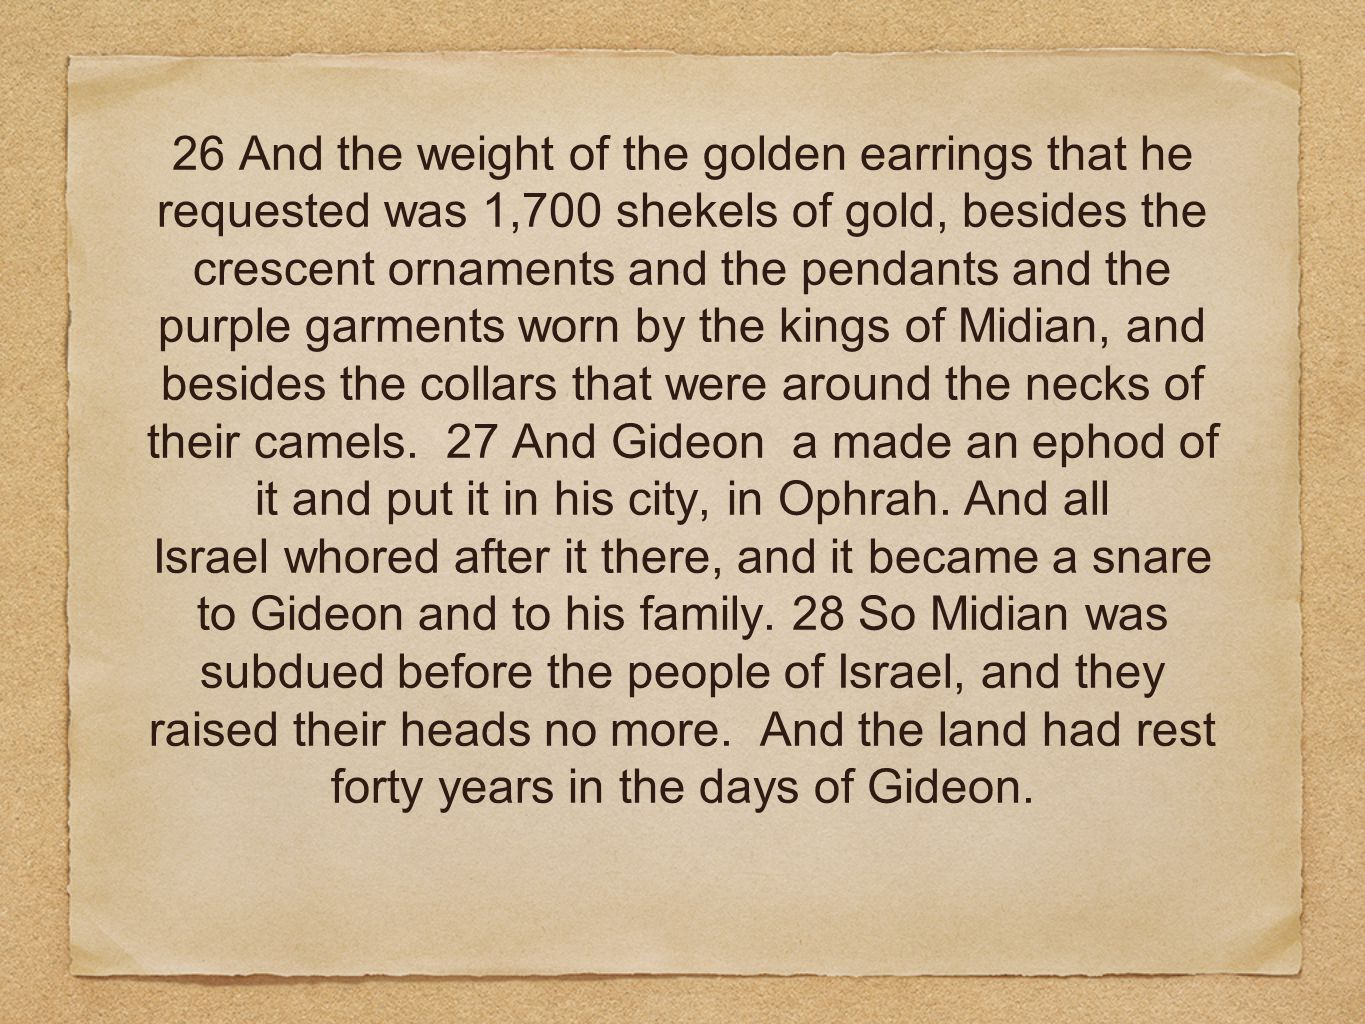 26 And the weight of the golden earrings that he requested was 1,700 shekels of gold, besides the crescent ornaments and the pendants and the purple garments worn by the kings of Midian, and besides the collars that were around the necks of their camels.